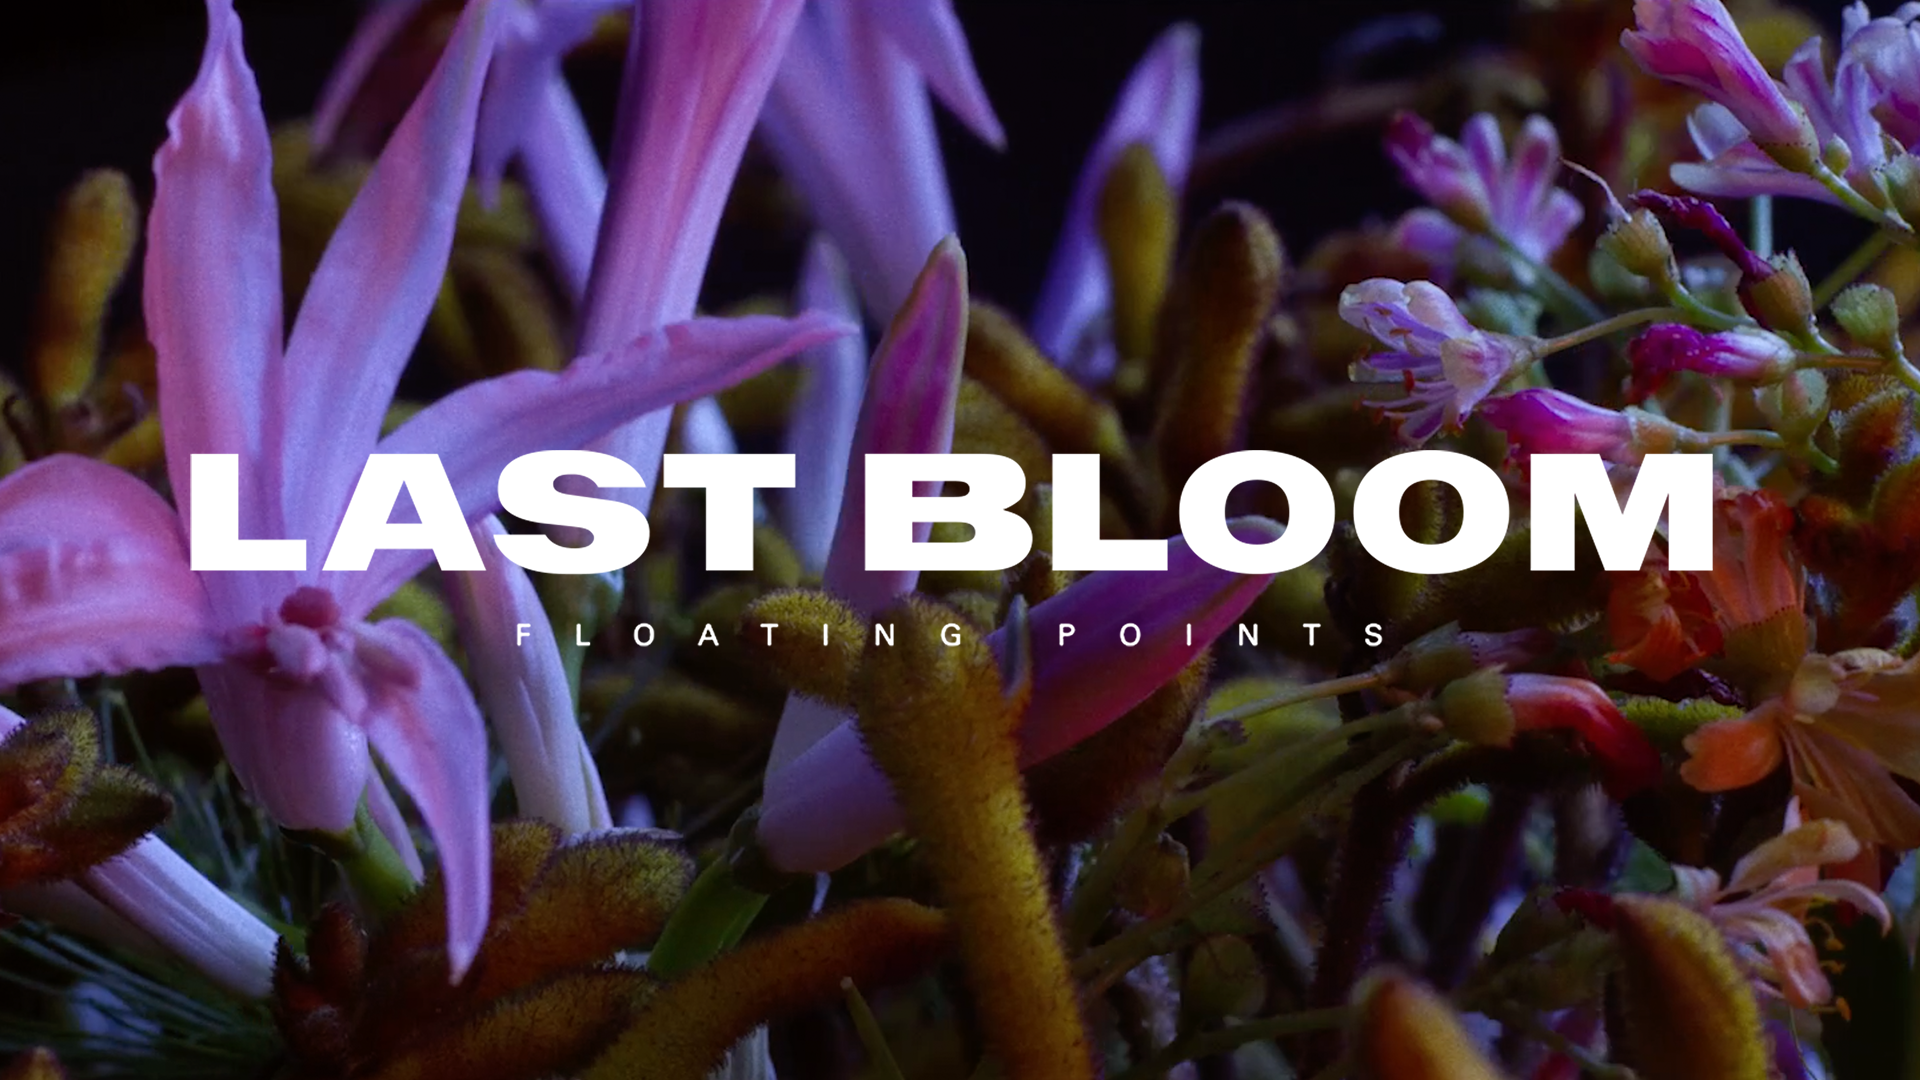 Last bloom and logo